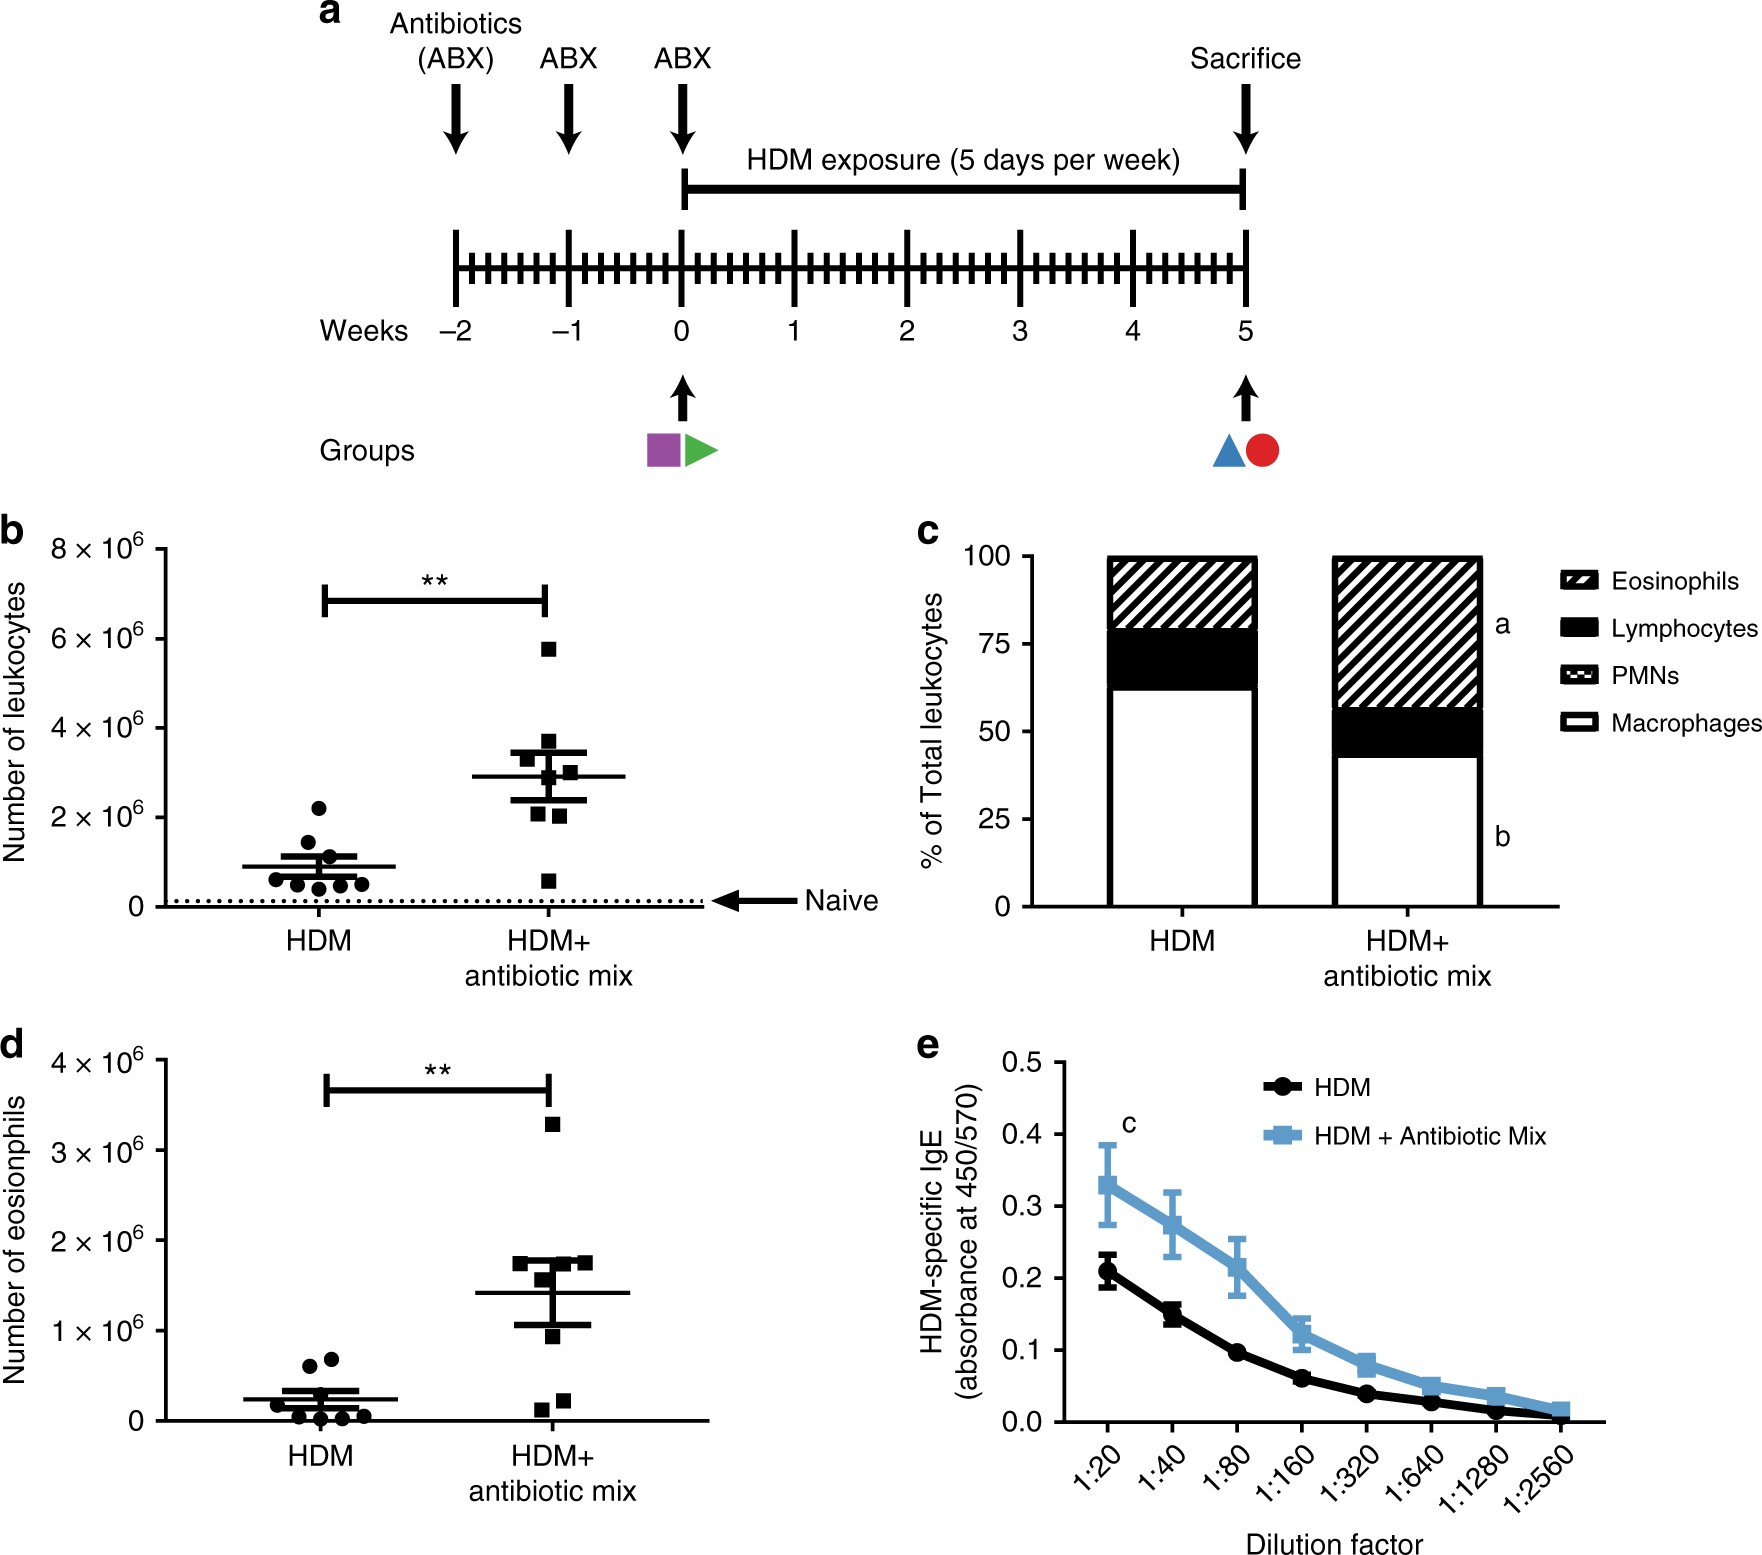 Early-life antibiotics attenuate regulatory T cell generation and increase  the severity of murine house dust mite-induced asthma | Pediatric Research